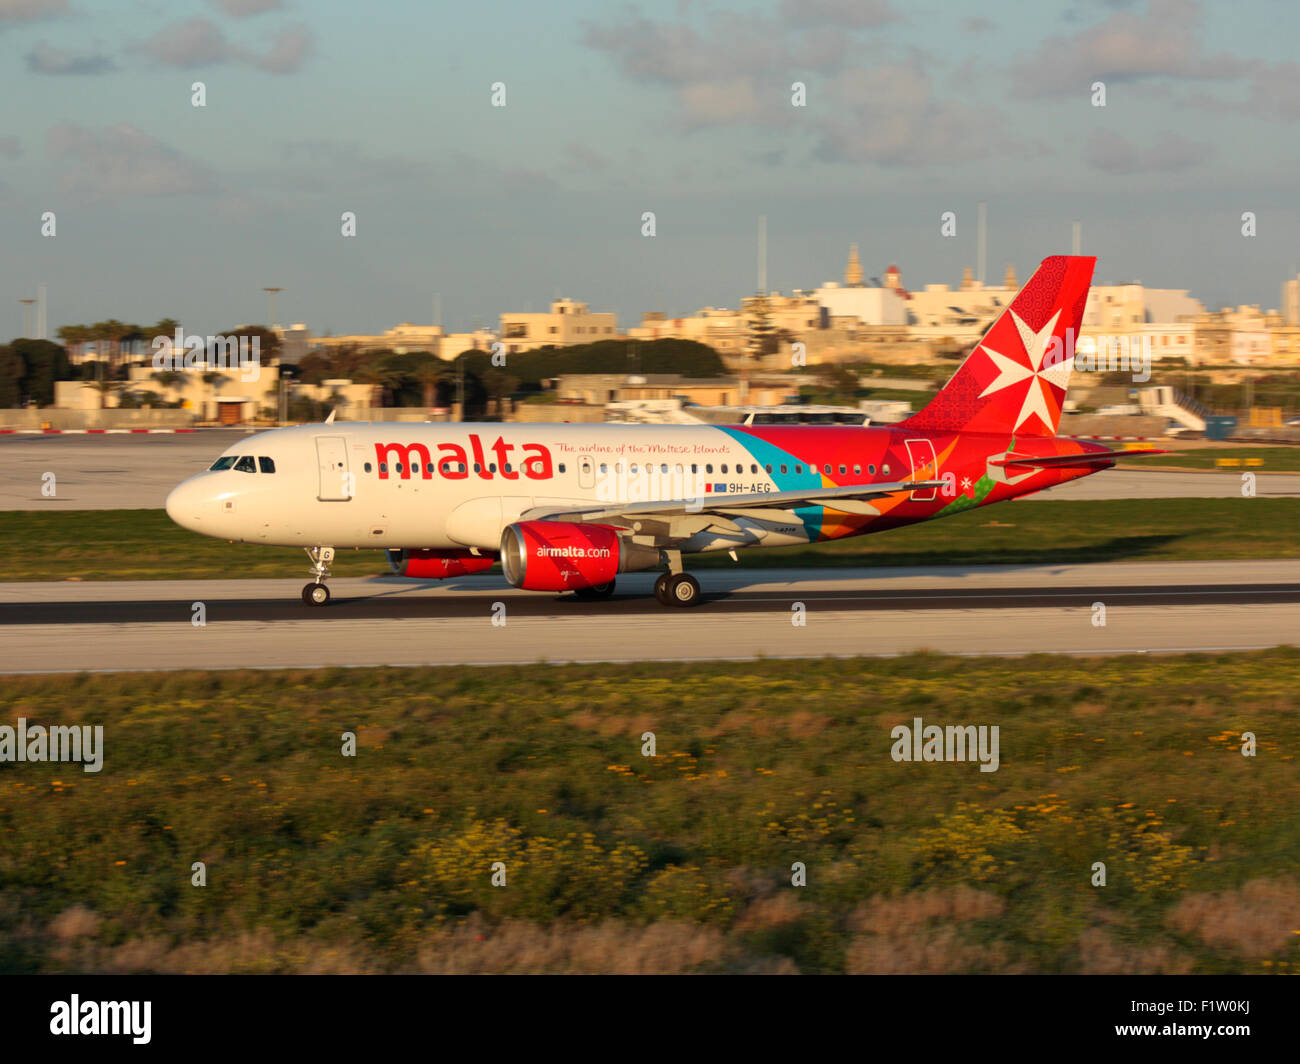 Les voyages aériens. Air Malta avion Airbus A319 au décollage à Malte Photo Stock